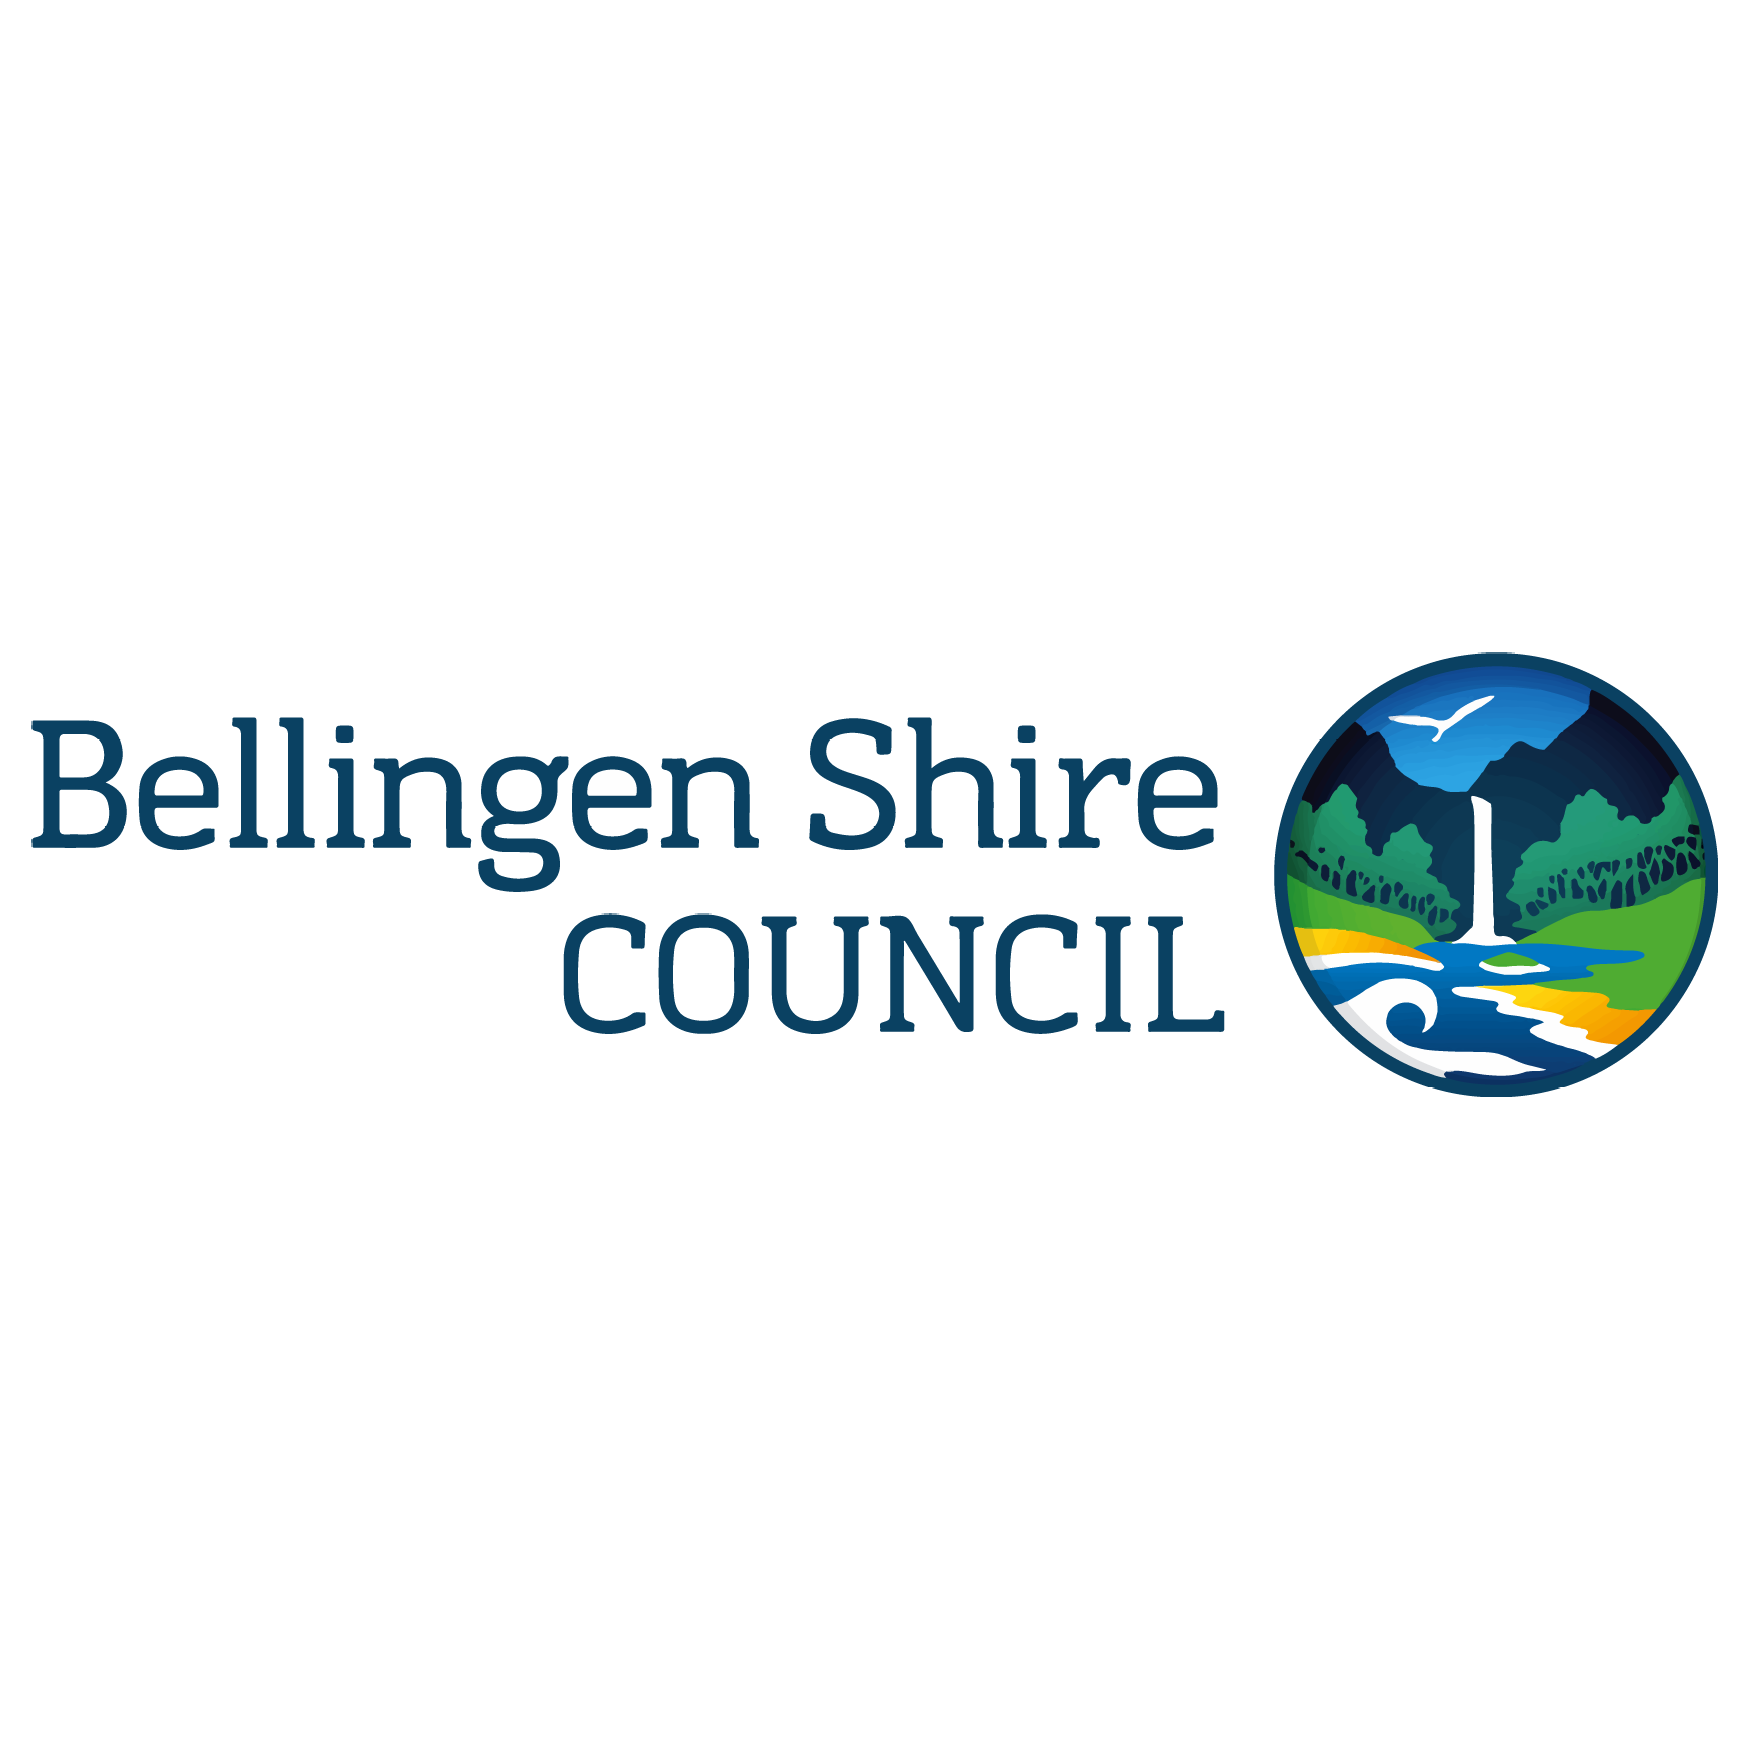 Bellingen Shire Council